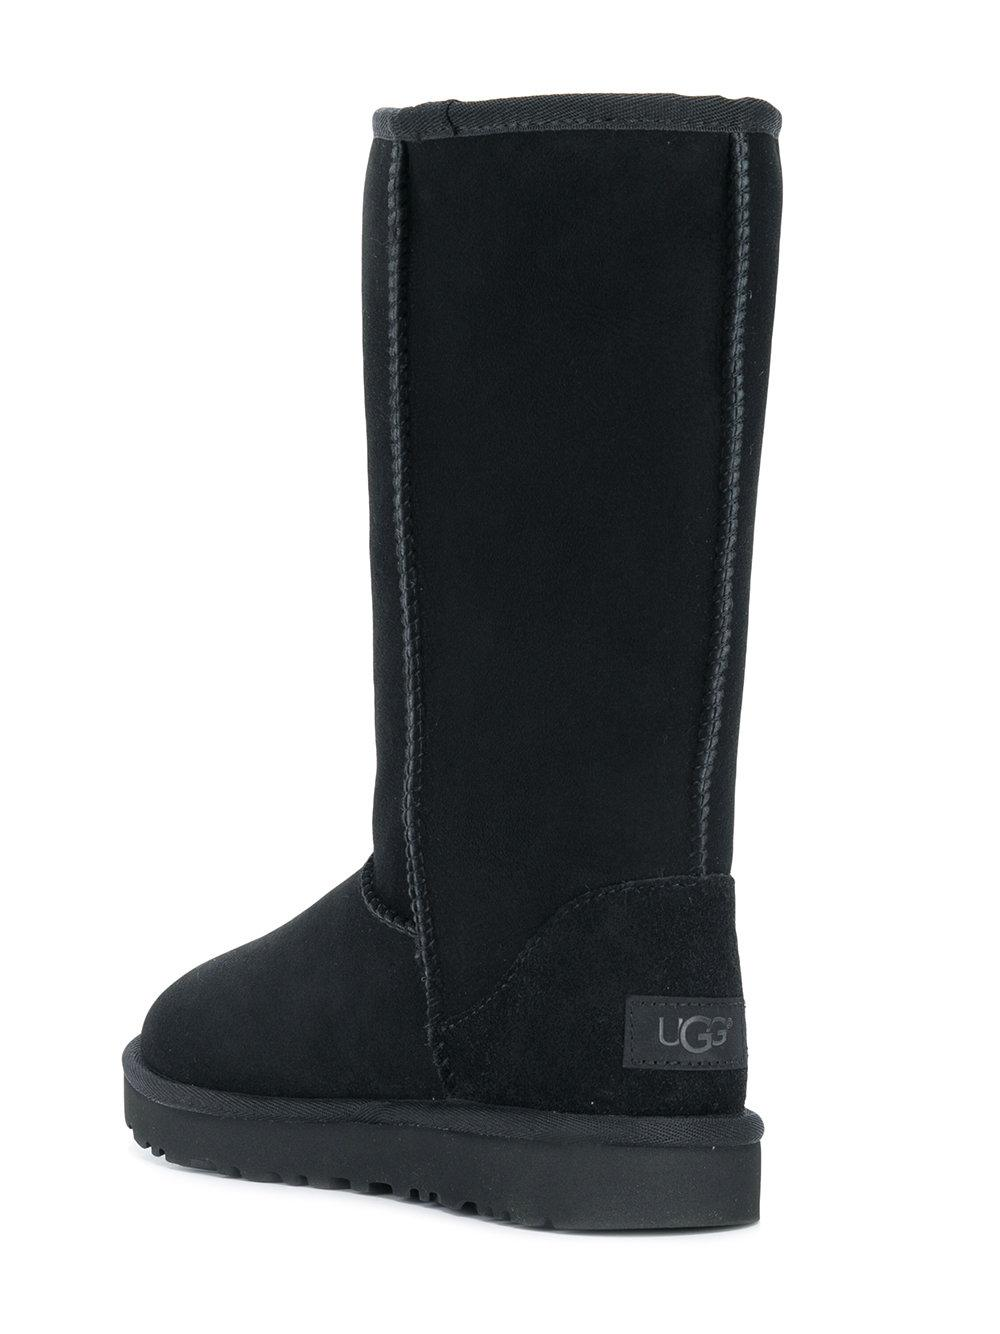 UGG Suede Classic Tall Ii Boots in Black